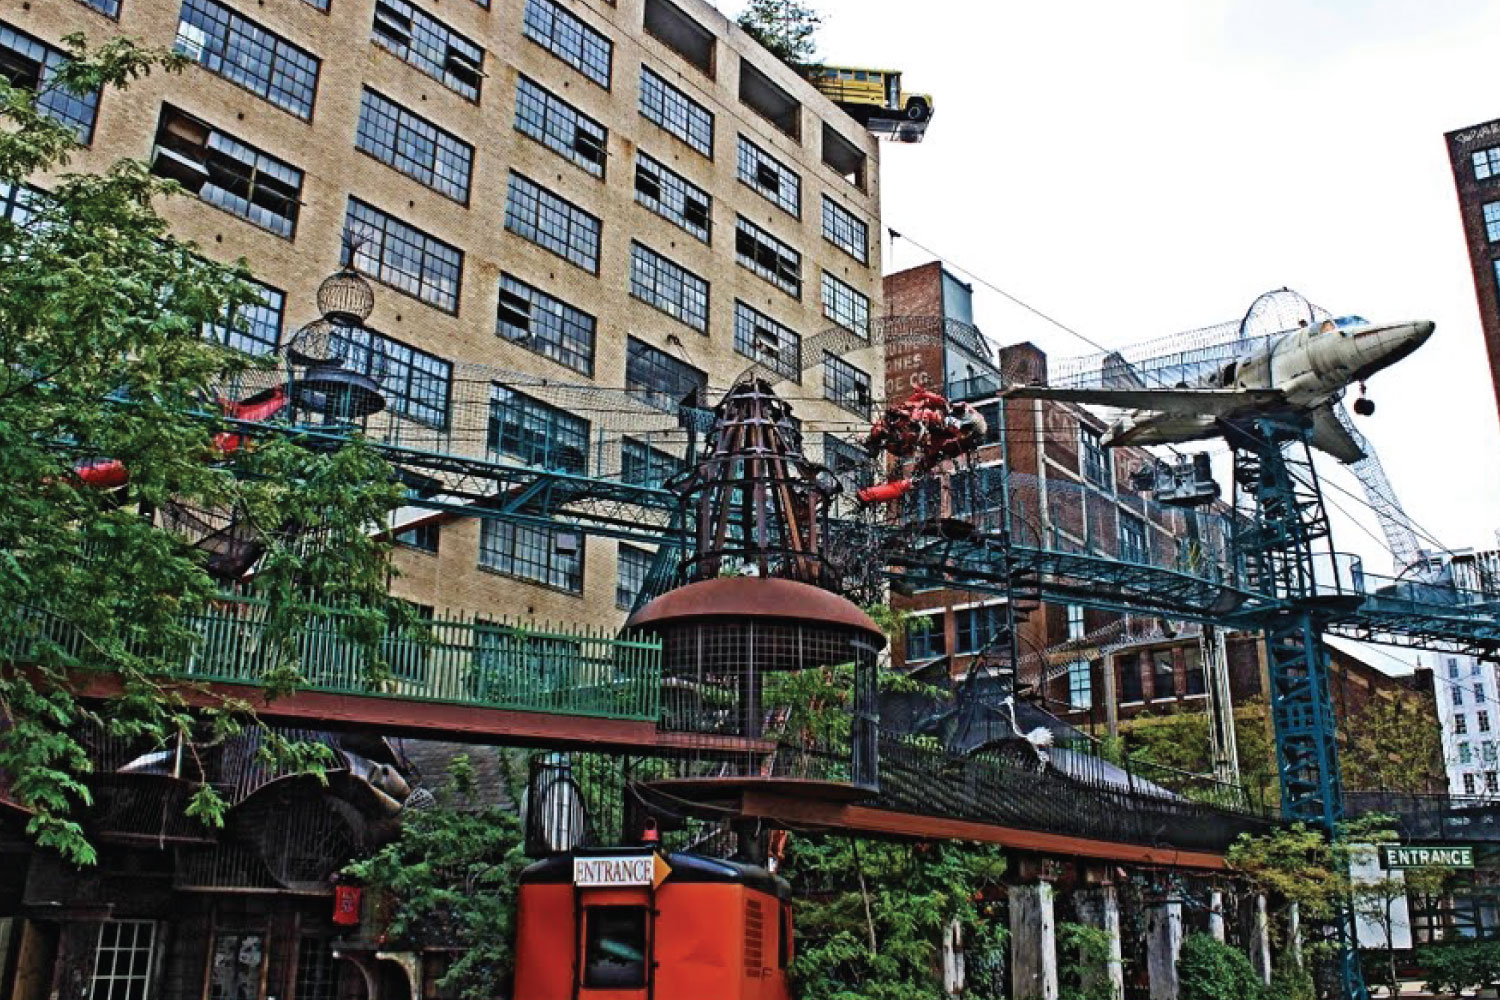 ST. LOUIS CITY MUSEUM